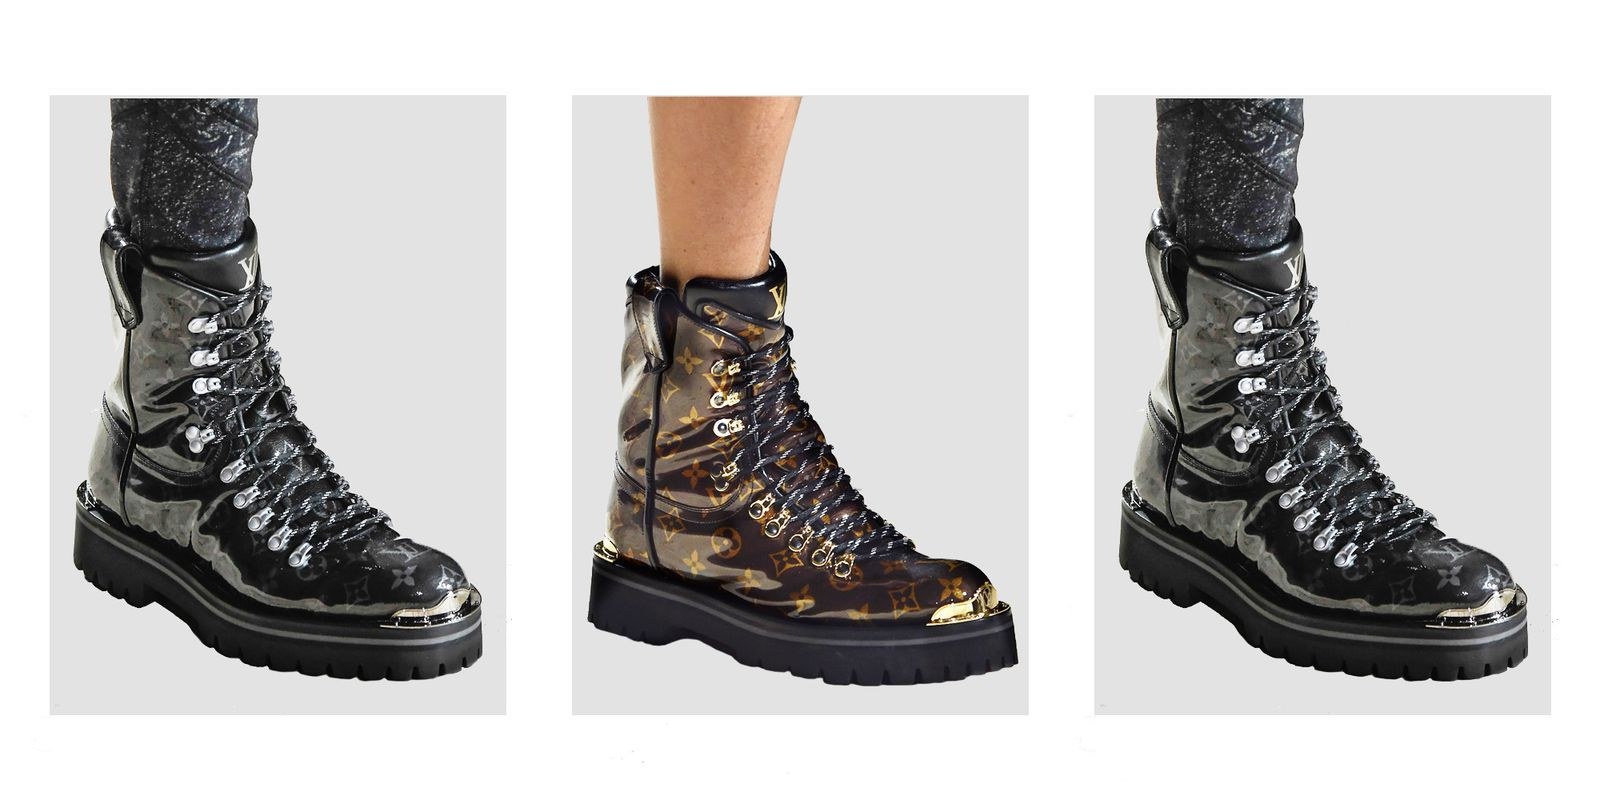 0a5357fb6375 These Louis Vuitton Hiking Boots Are Everything